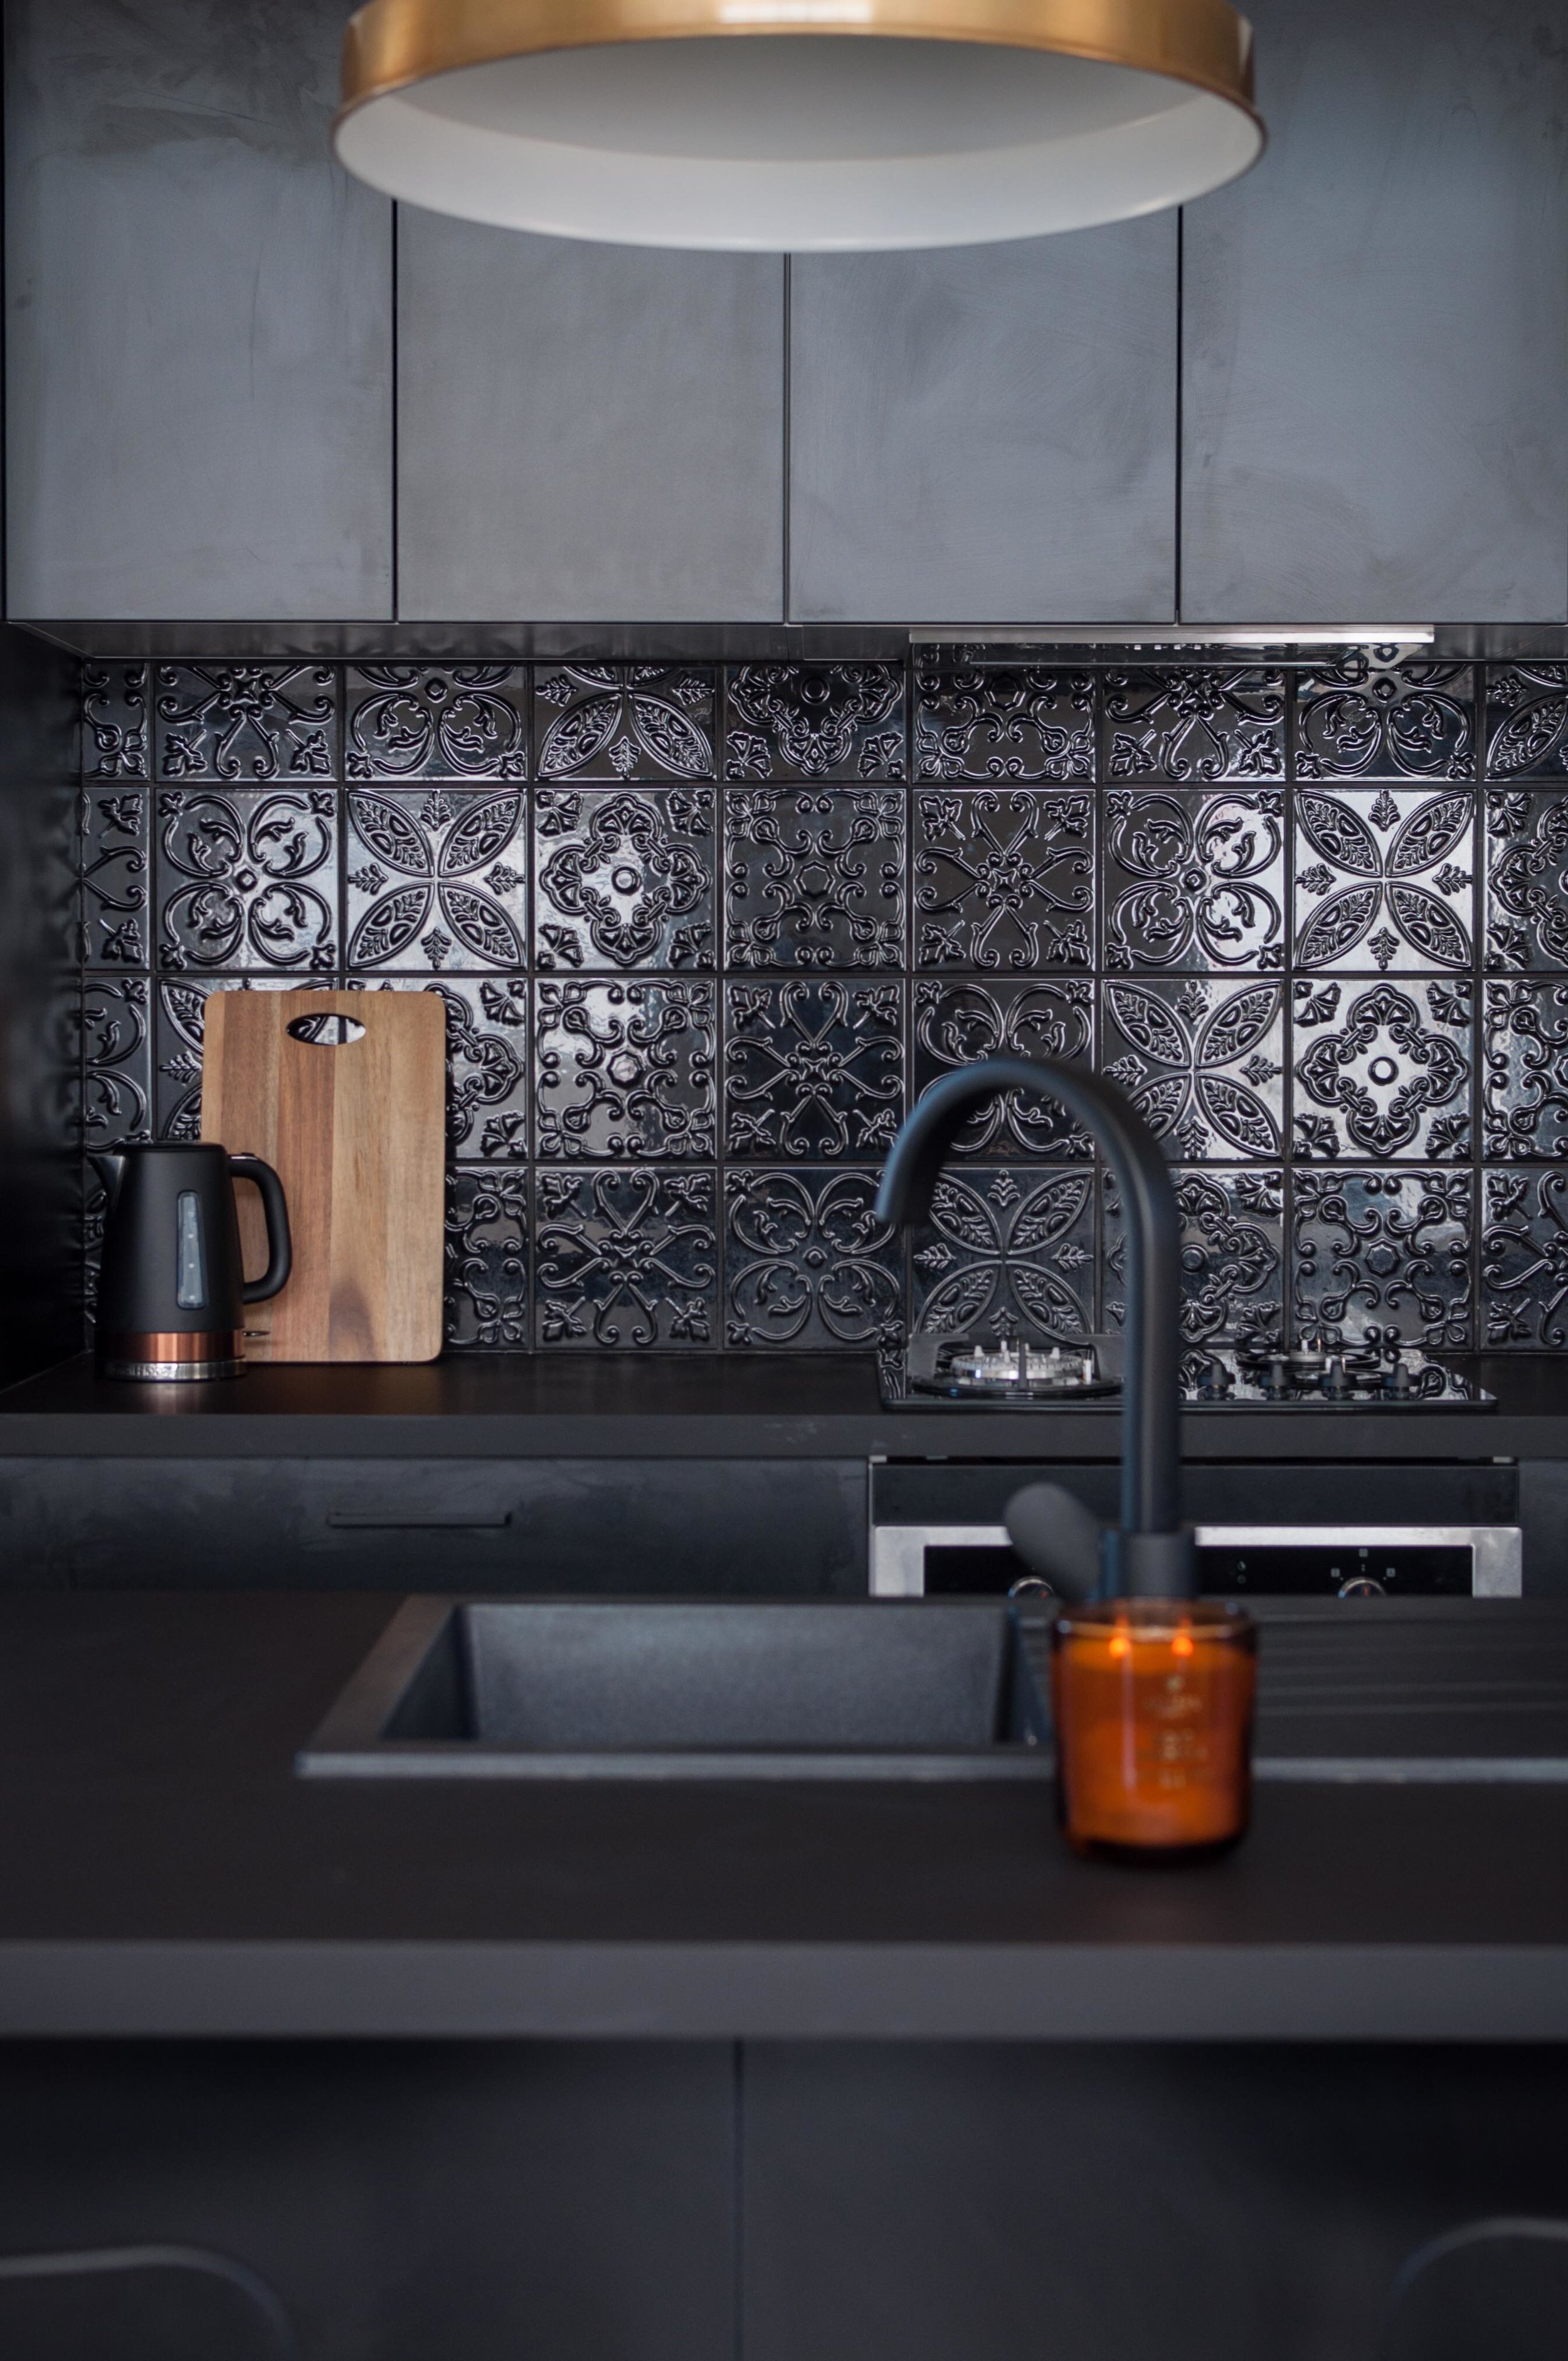 Welcome to the Highland Escape kitchen - black and bold!  Photo by Sarah Drummond Photography